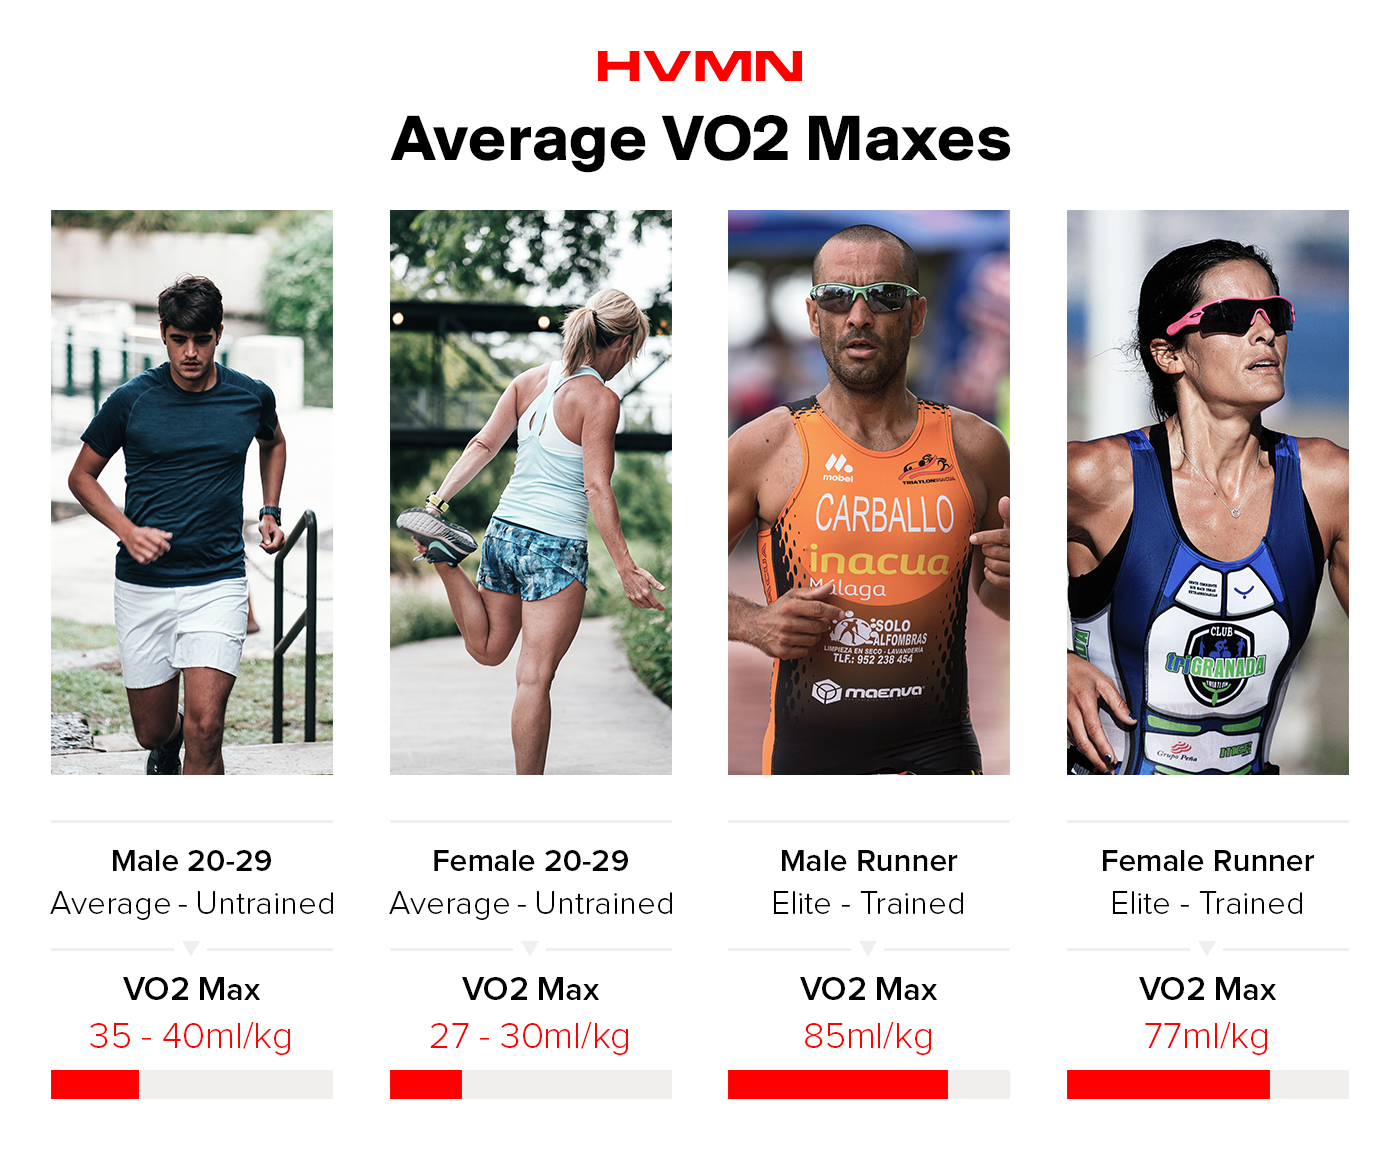 Four athletes, and their average VO2 maxes: a man running, a woman stretching, both average untrained athletes. A marathoner man and woman, both trained athletes, with their associated VO2 maxes.